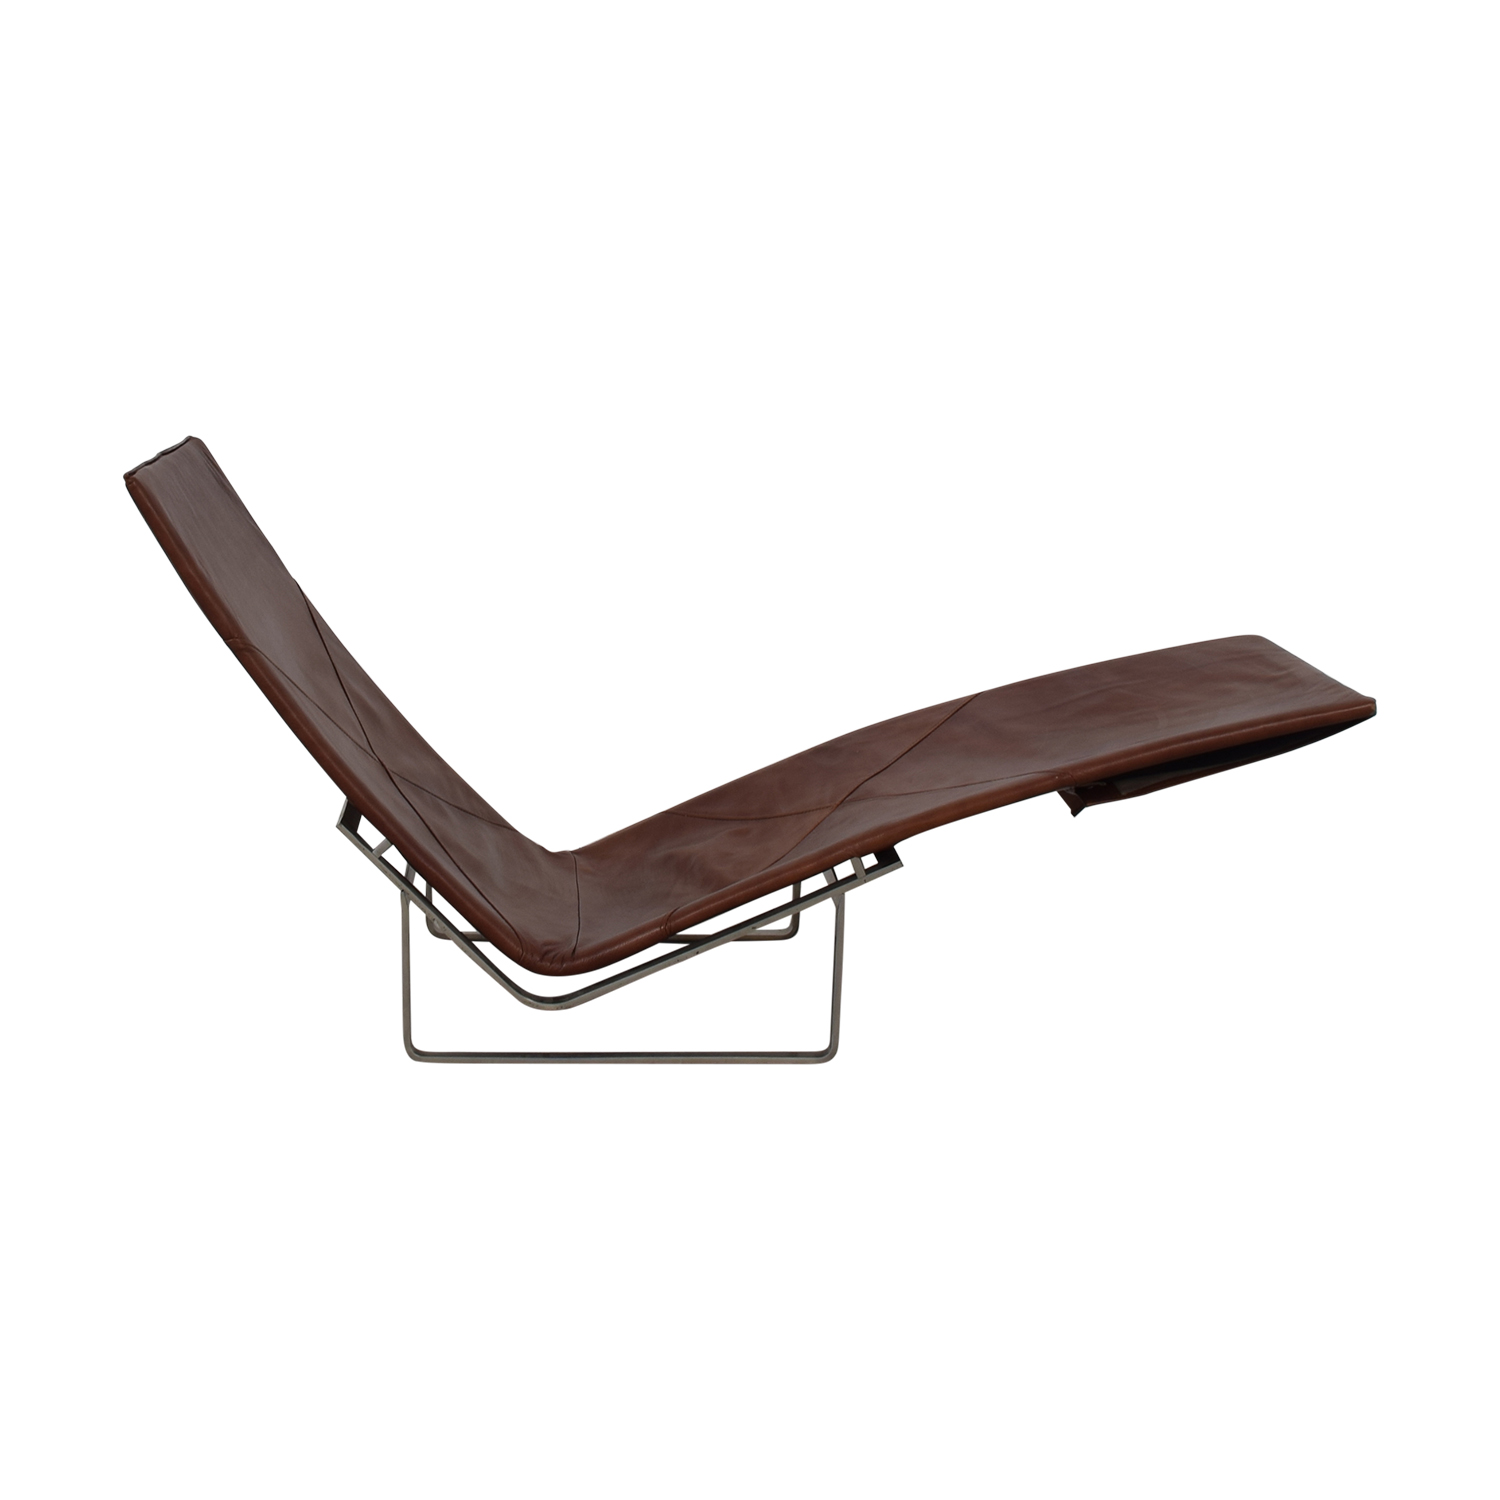 Kardiel Kardiel PK24 Lounge Chair